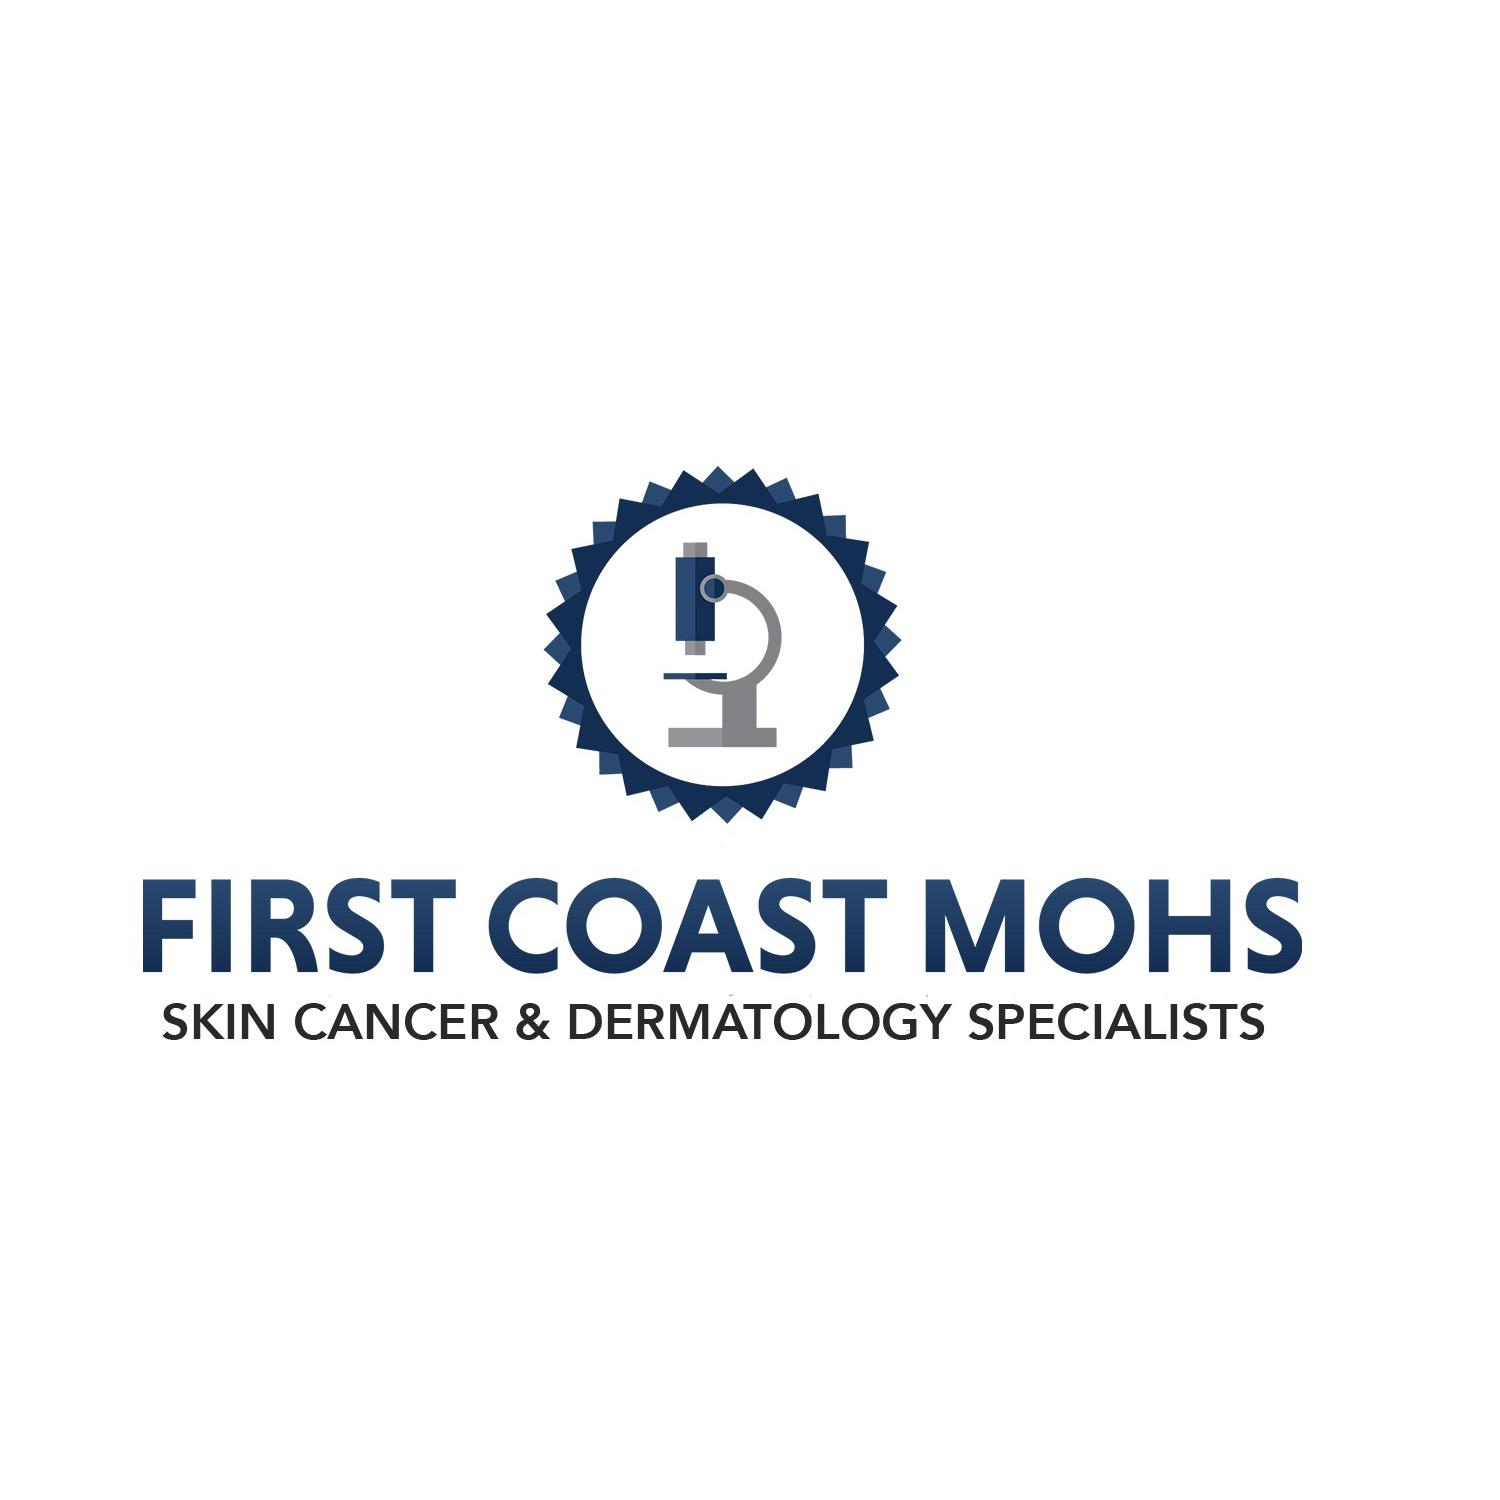 First Coast Mohs of Mandarin